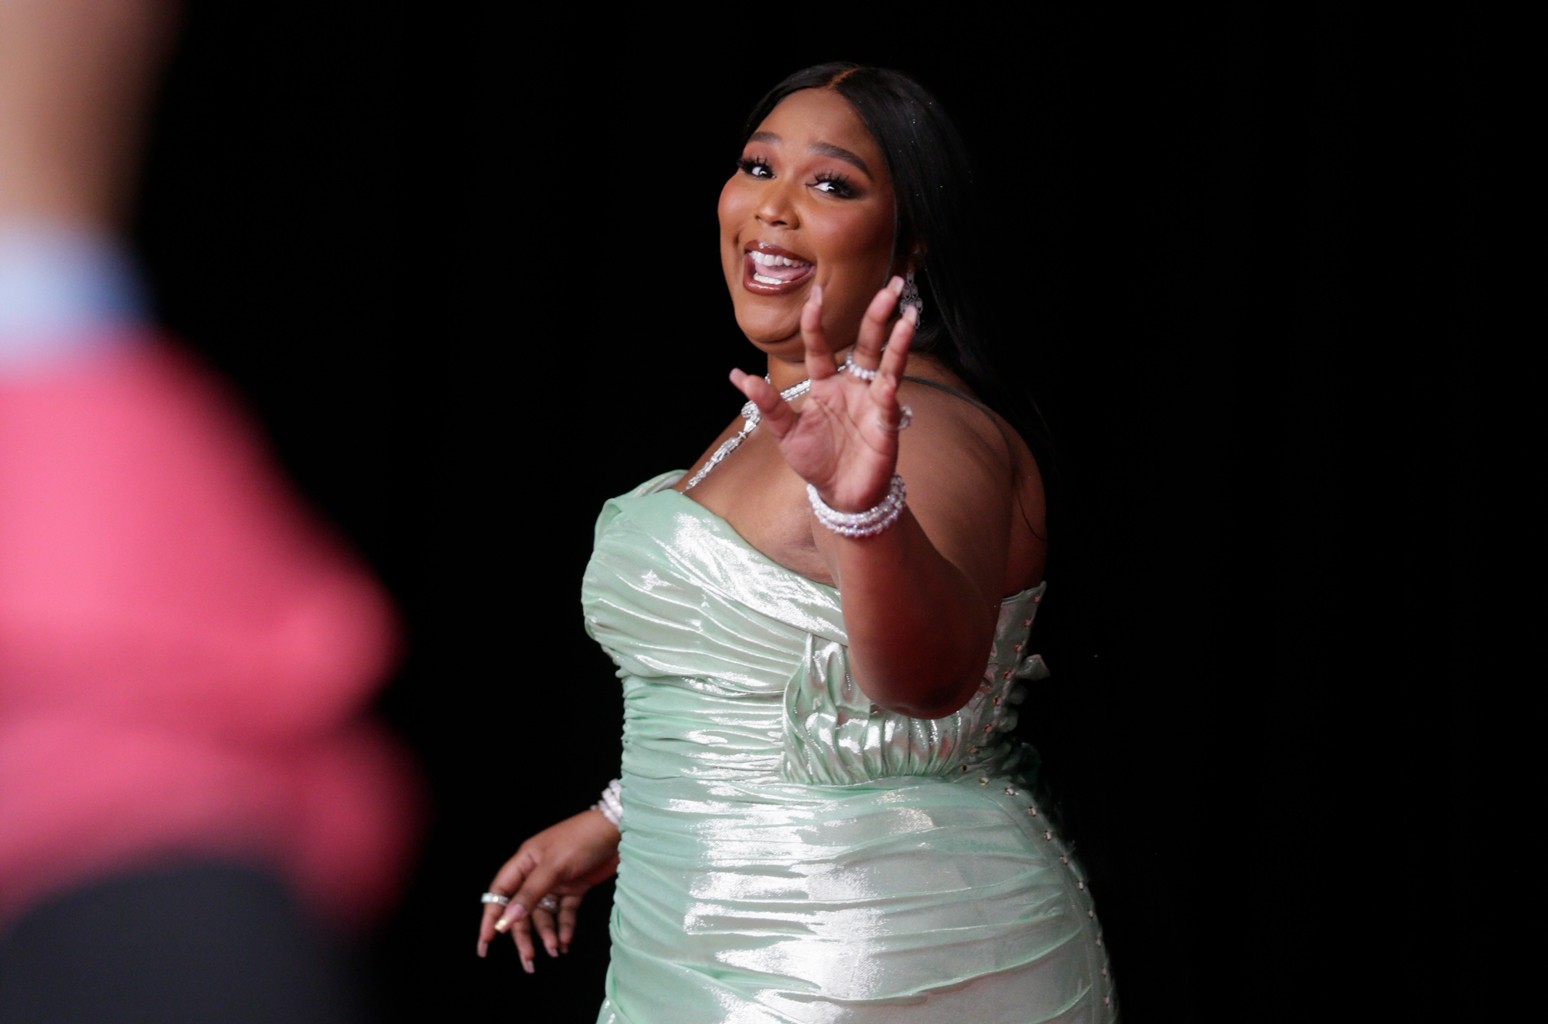 10 facts about Lizzo